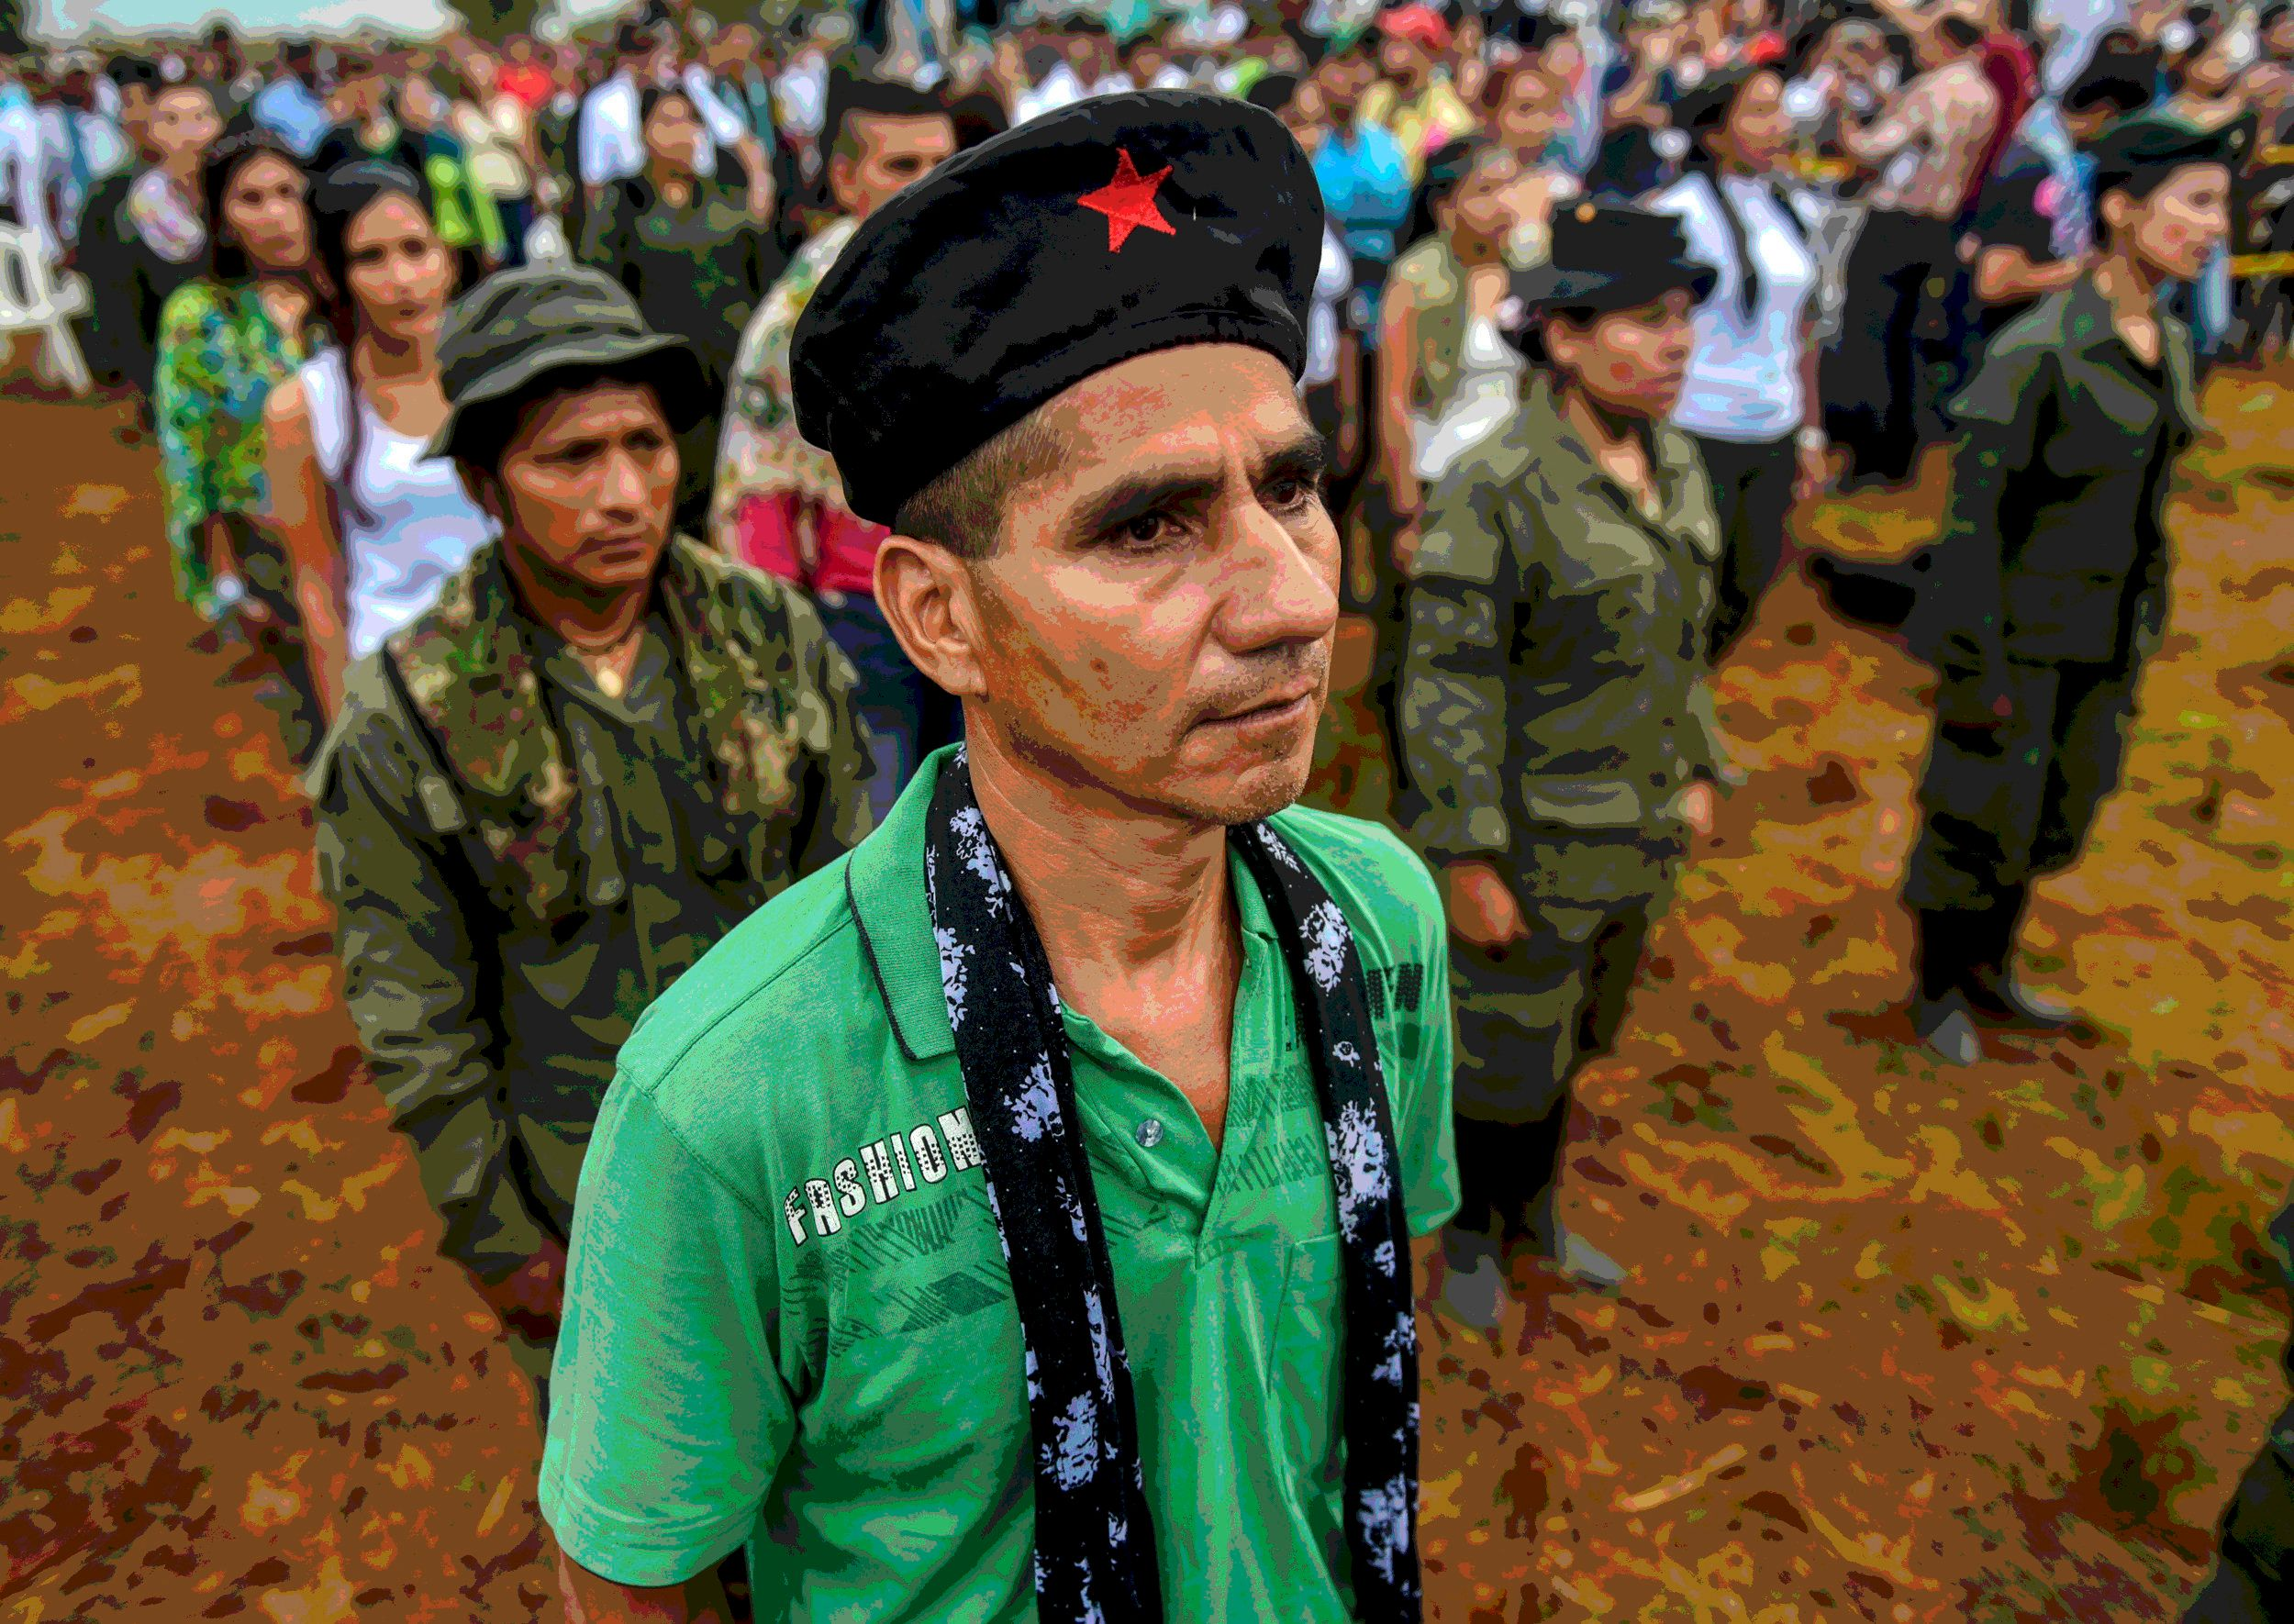 FARC members attend the opening ceremony of what leaders hope will be their last conference as a guerrilla army in the Yari Plains on Sept 17